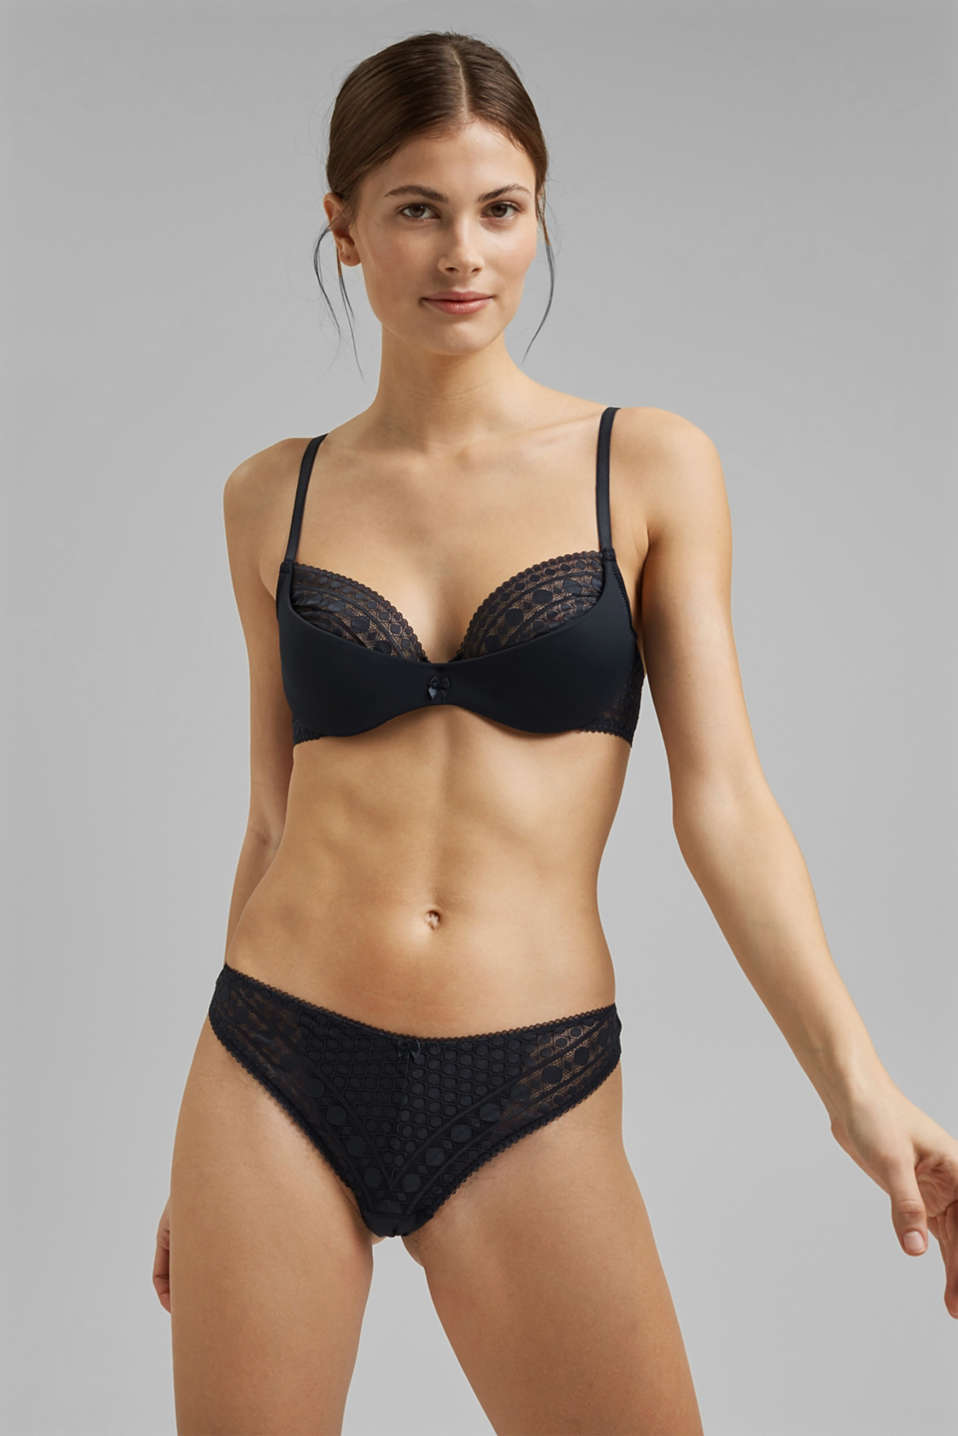 Esprit - Padded underwire bra in graphic lace